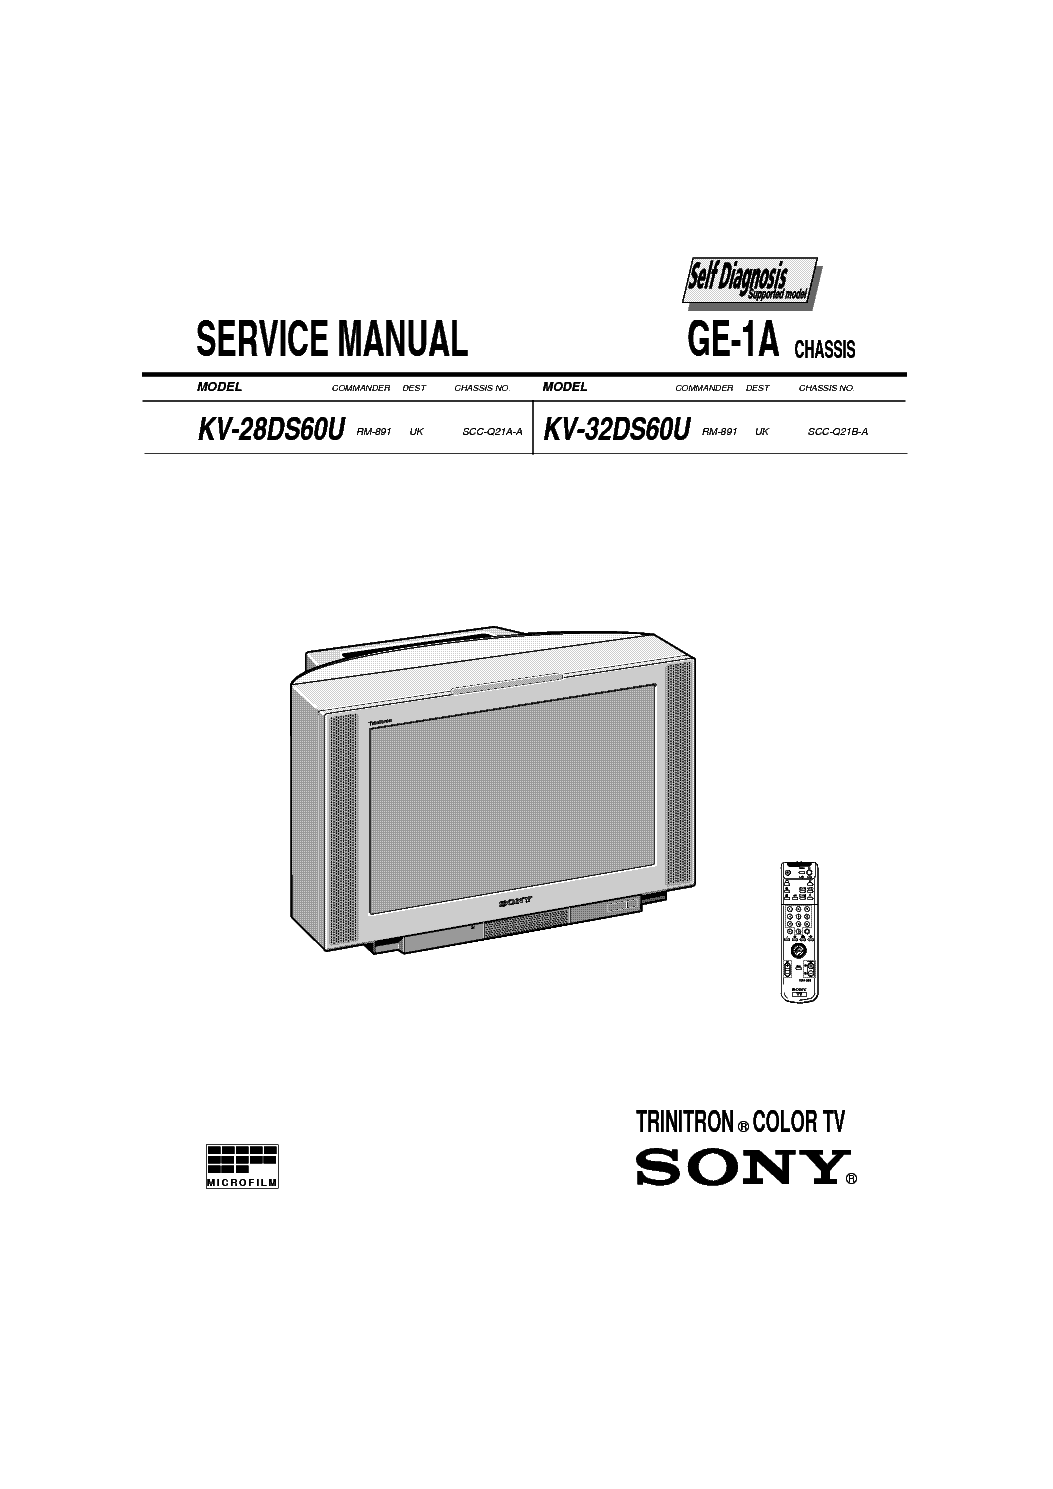 SONY TV KV-28 32DS60-GE-1A CHASSIS SM Service Manual